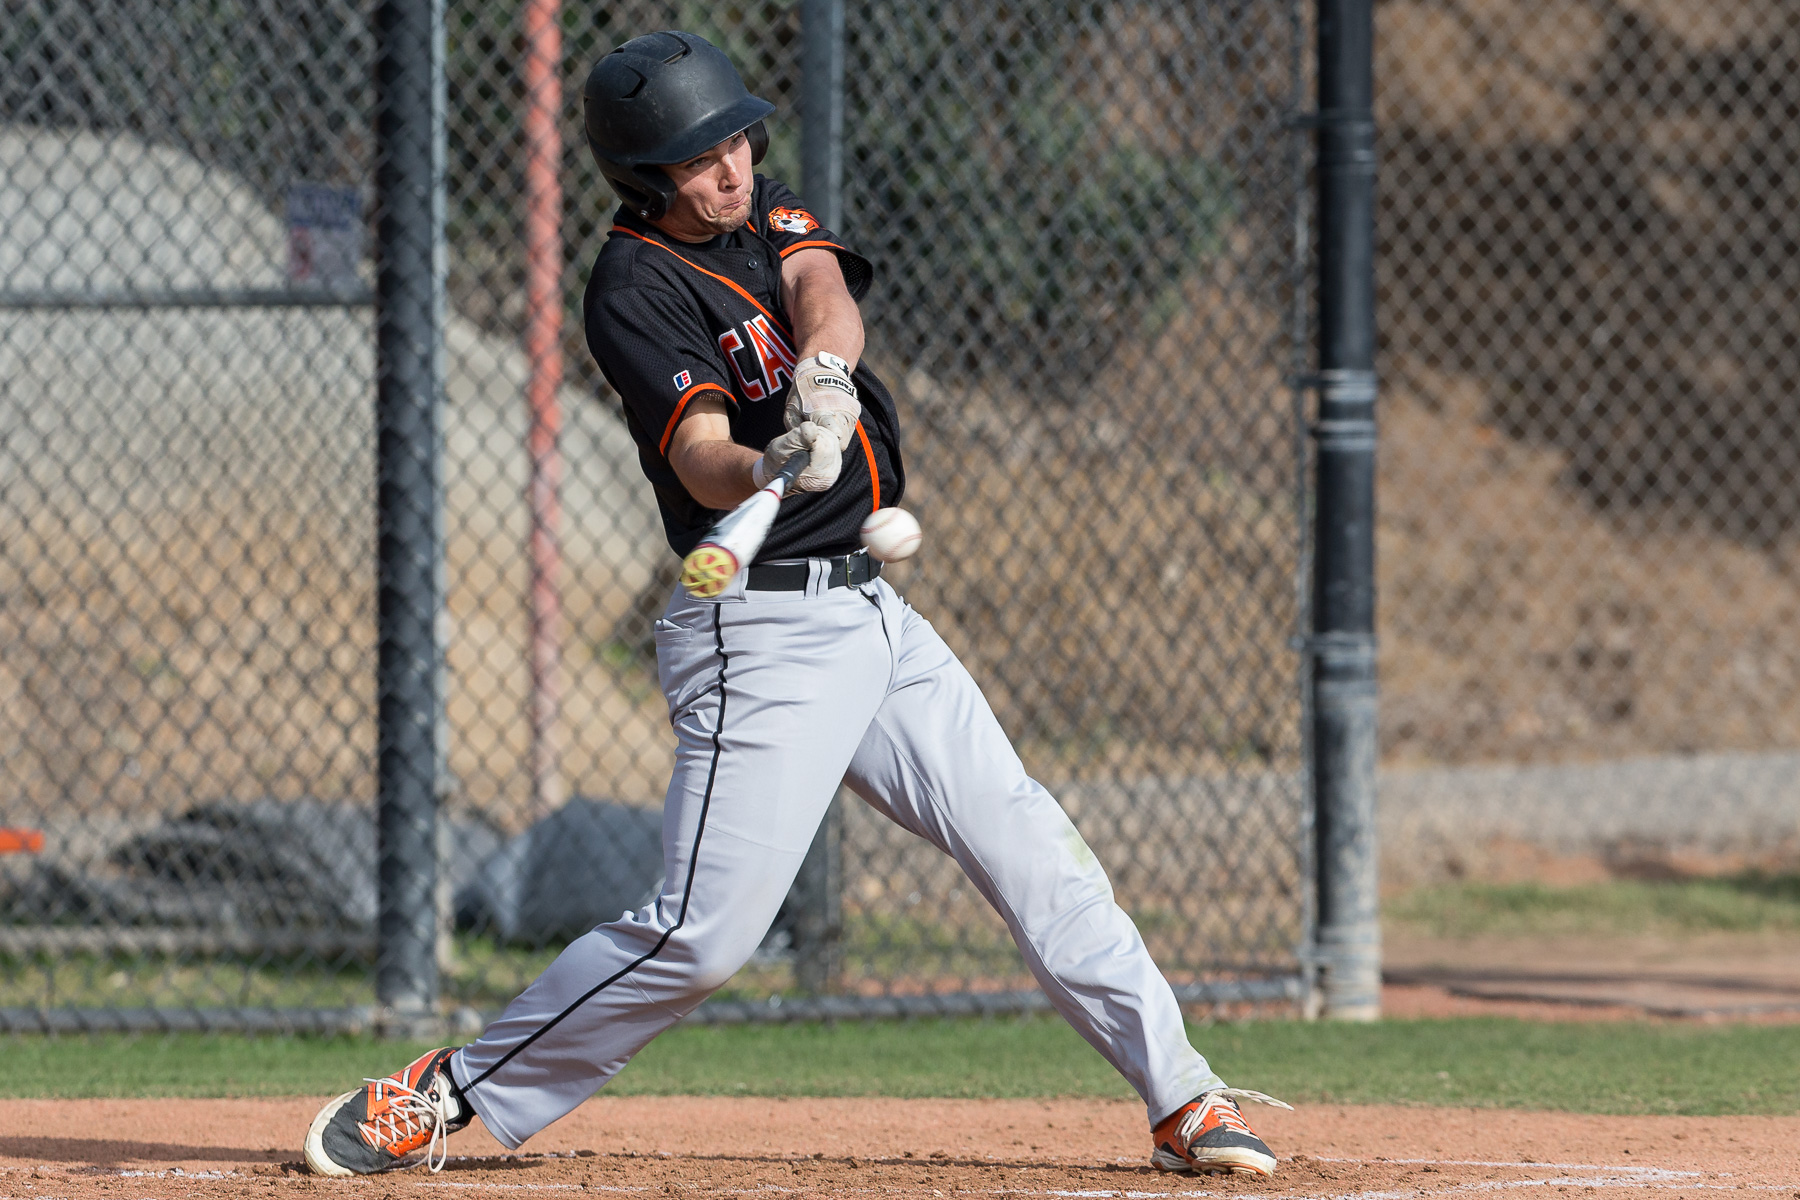 Burleson Breaks Out in Return to SCIAC Play Versus Chapman